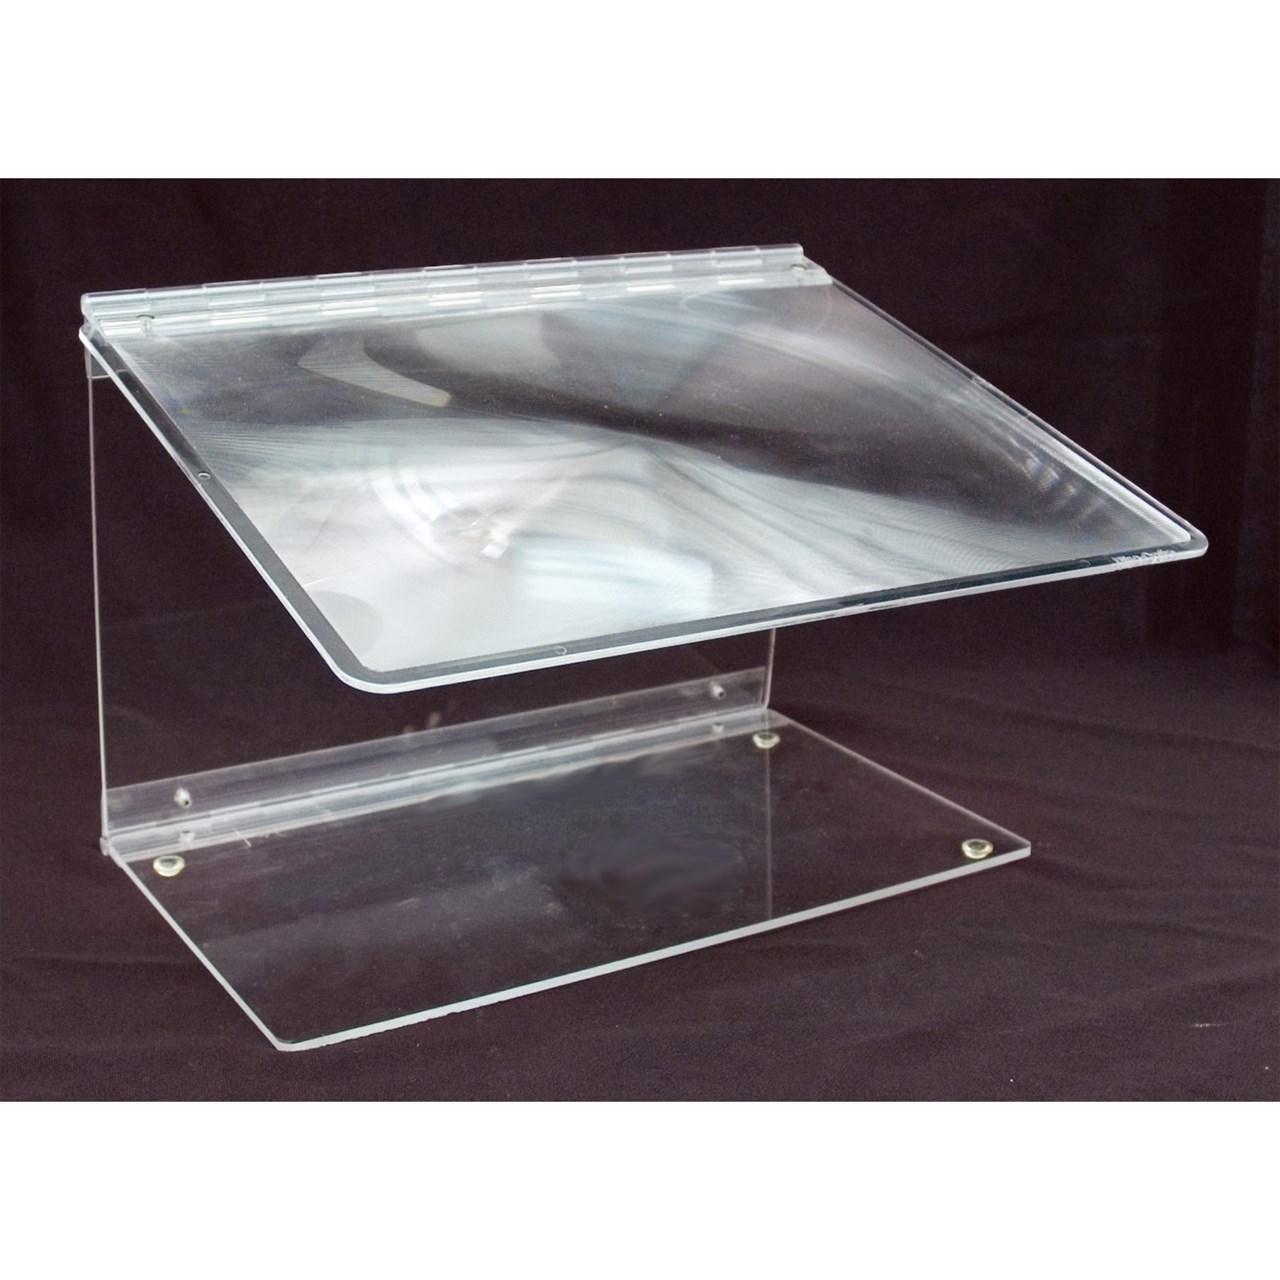 Reizen Fold-A-Mag 2x Folding Portable Page Magnifier- Clear